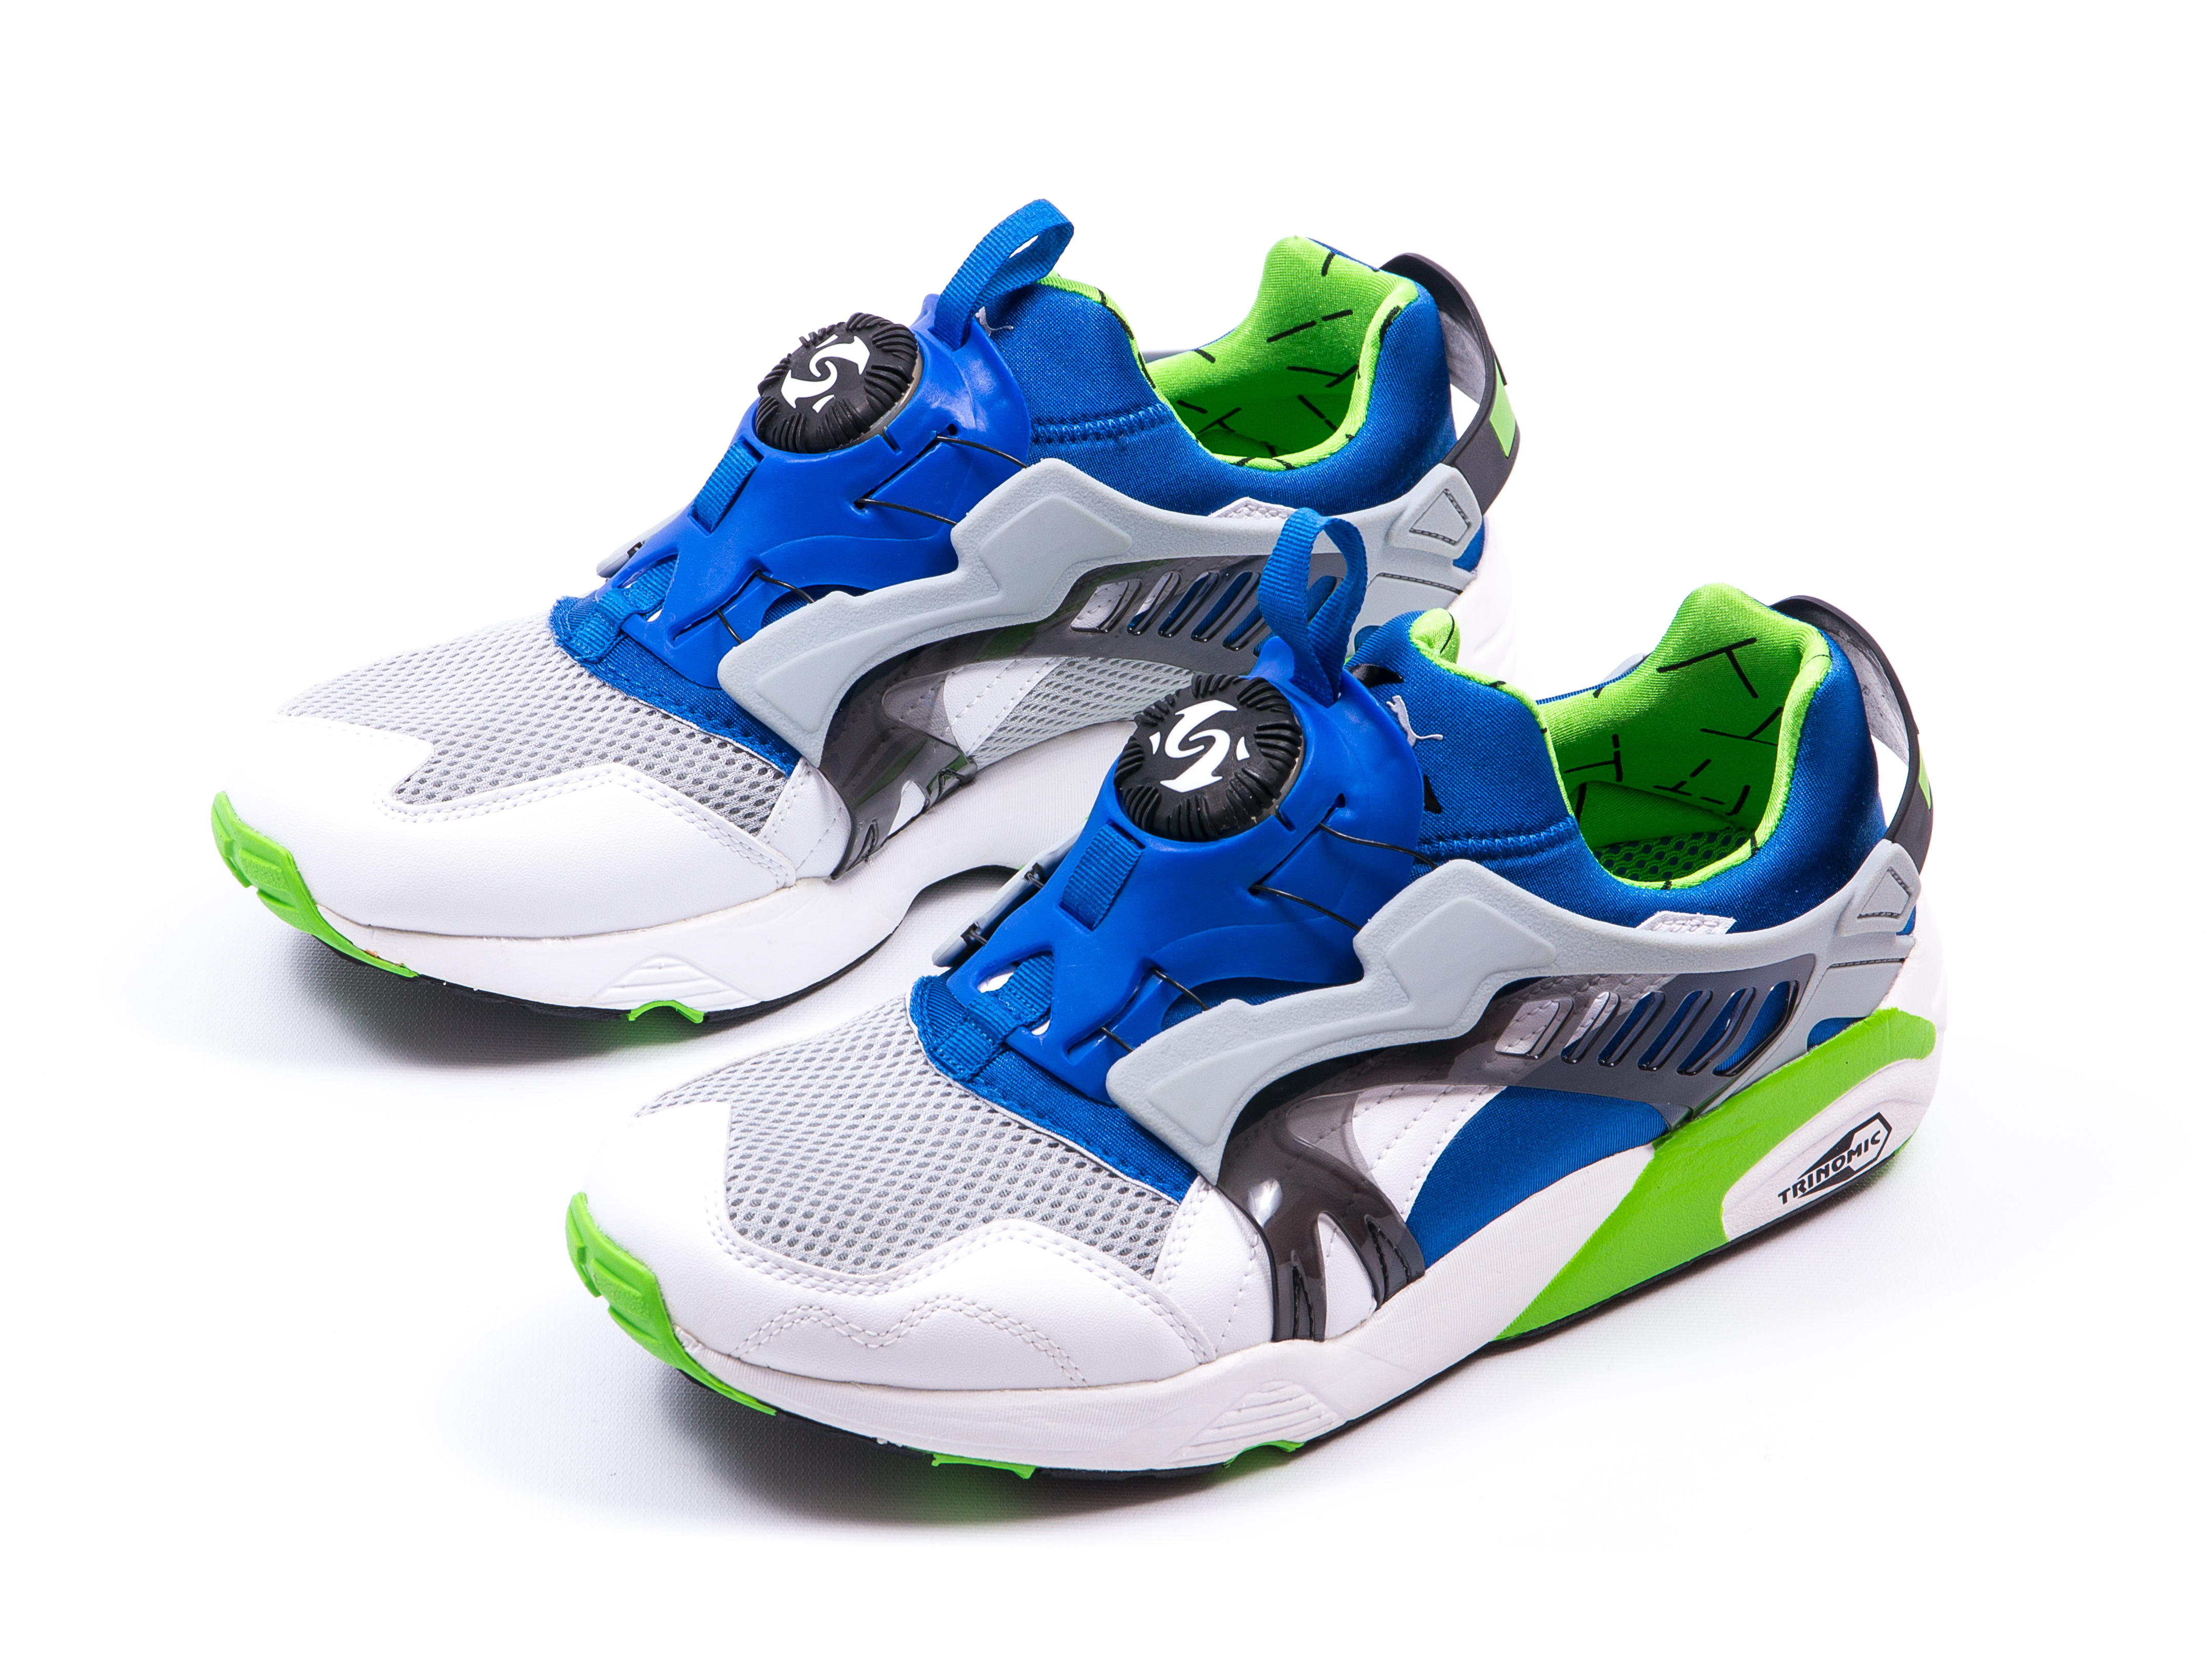 puma disc blaze og 1993 now available packer shoes. Black Bedroom Furniture Sets. Home Design Ideas